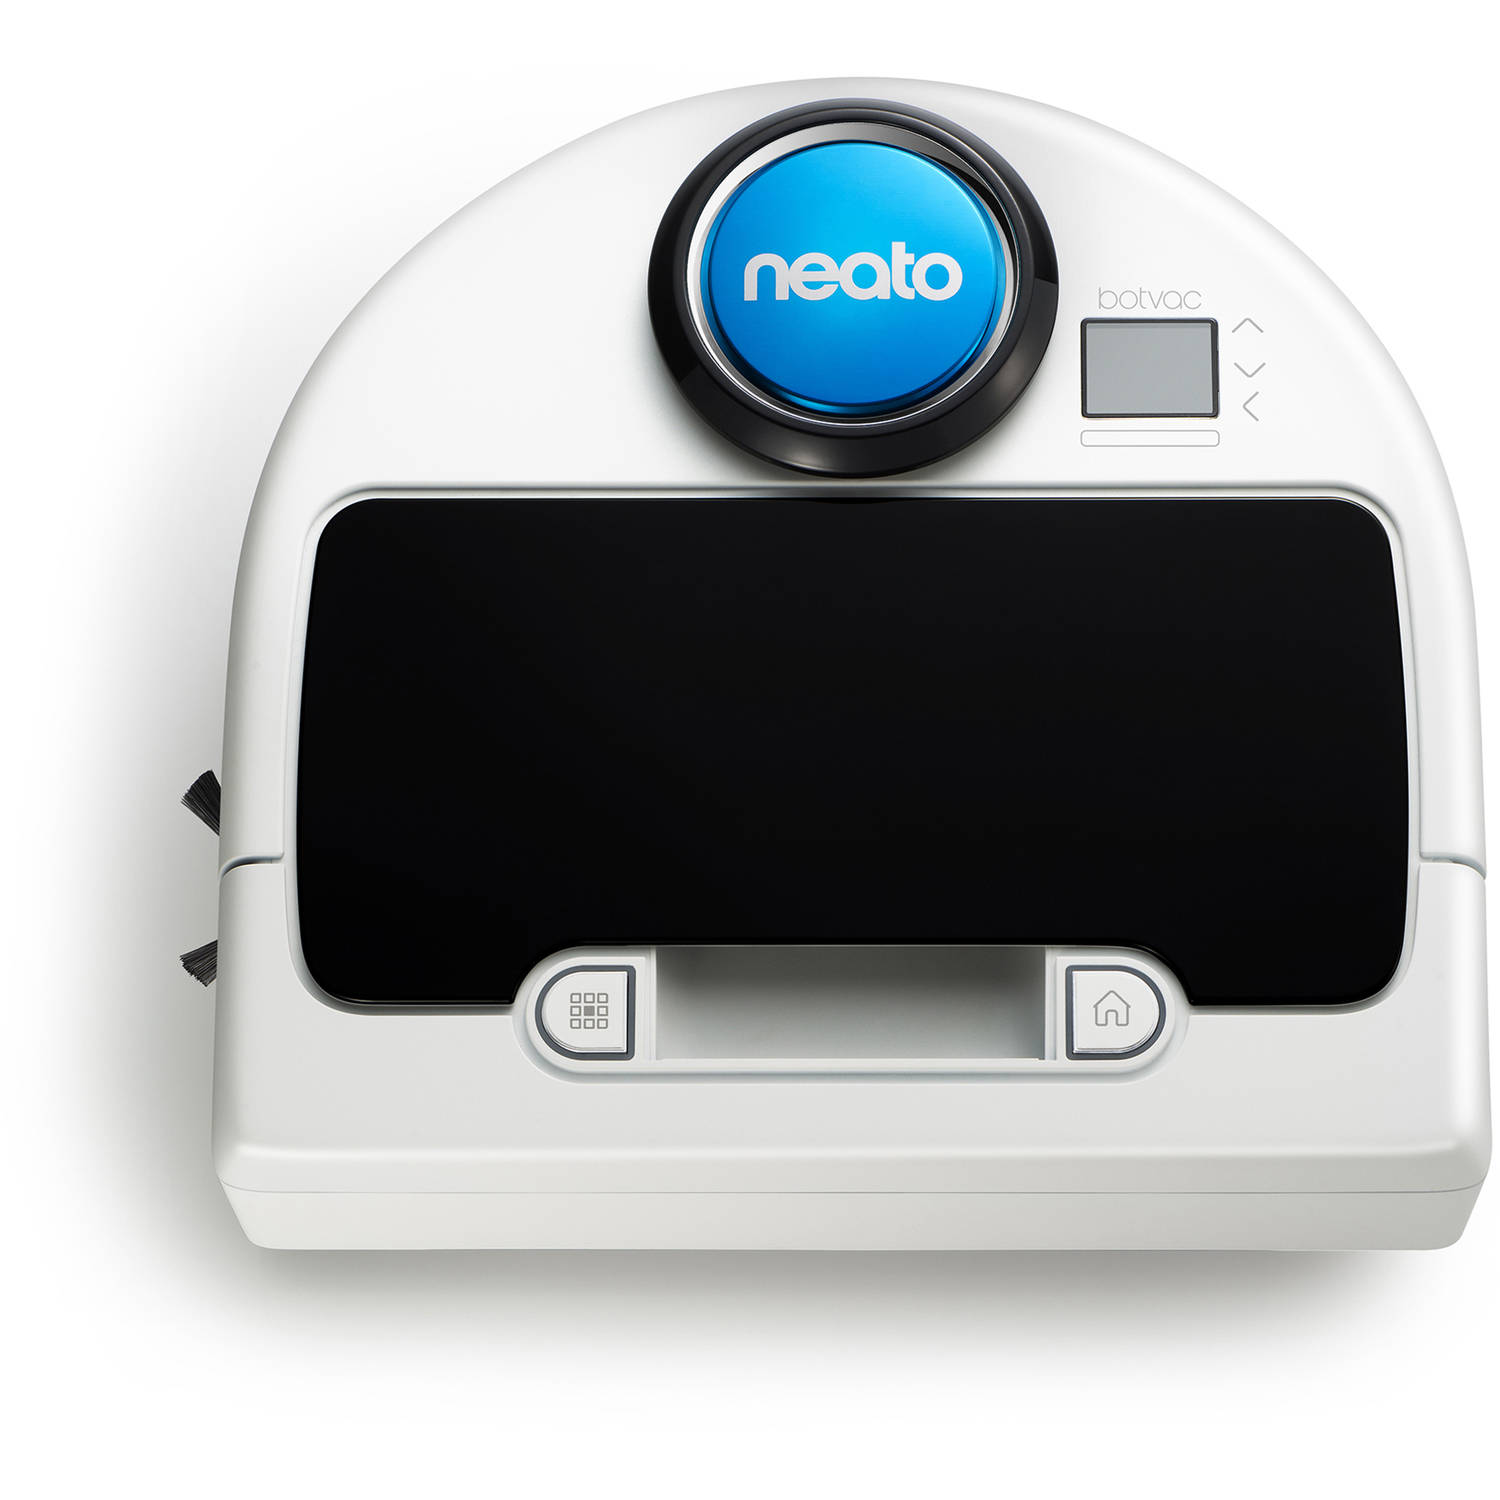 Neato Botvac D Series Robot Vacuum for Everyday Cleaning D7500